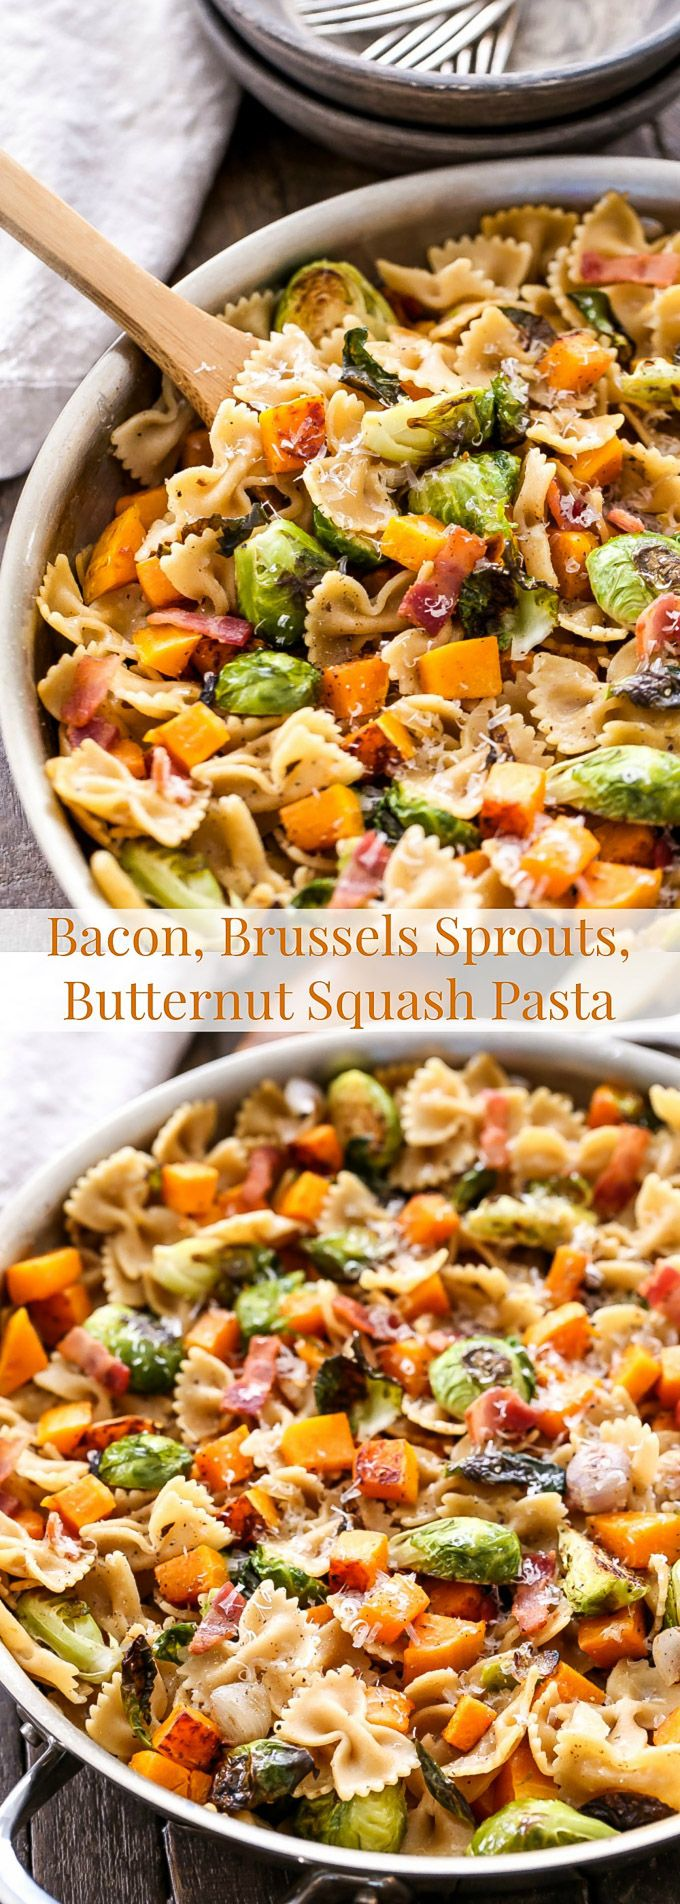 Veggie pasta never looked so good! This Bacon, Brussels Sprouts, Butternut Squash Pasta is a delicious and healthy comfort food dinner!